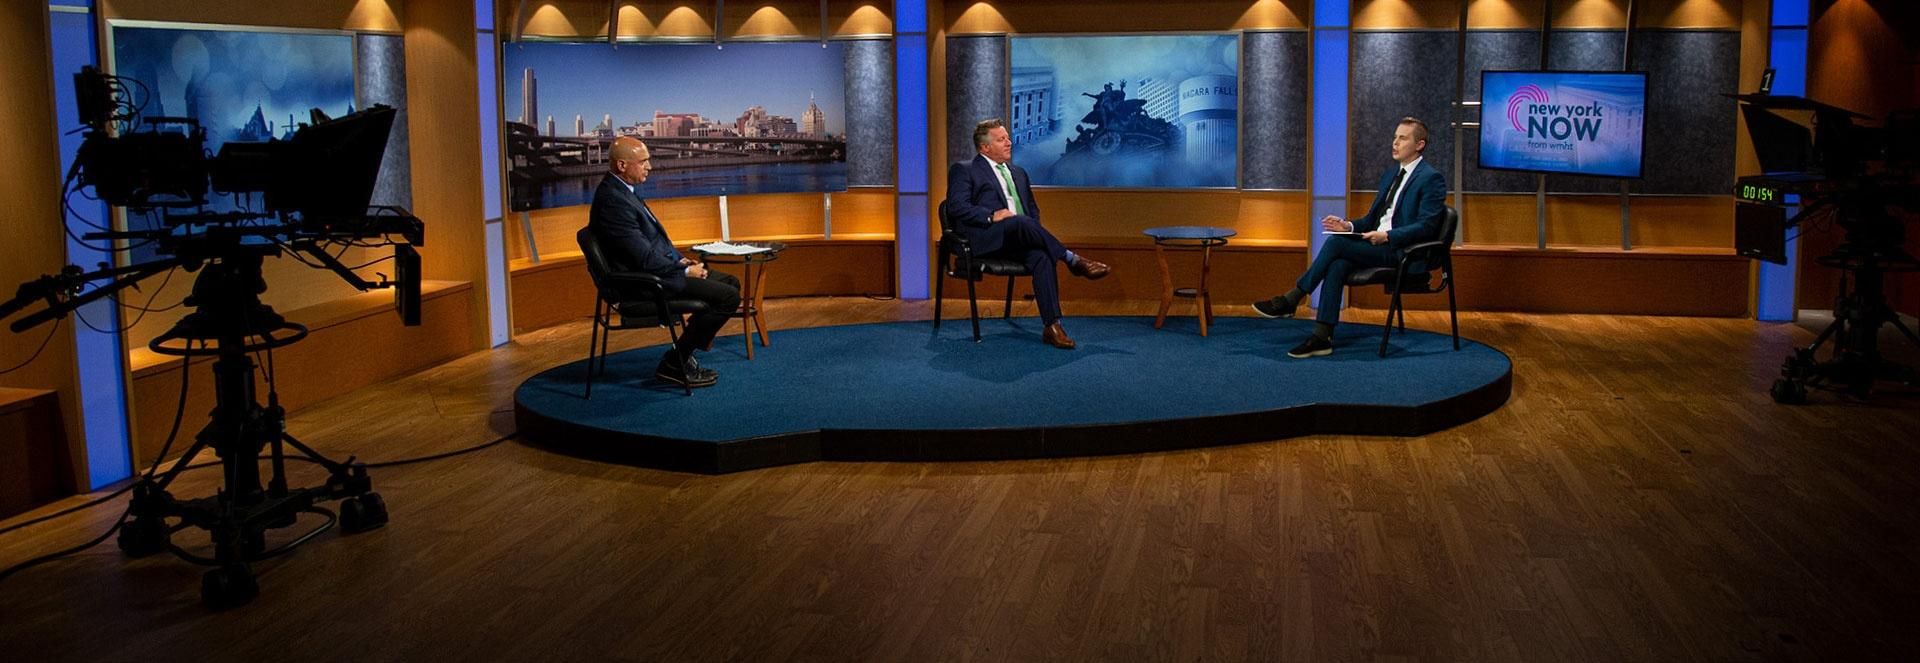 Three individuals are seated in chairs on a platform in a television studio during and interview while practicing social distancing.